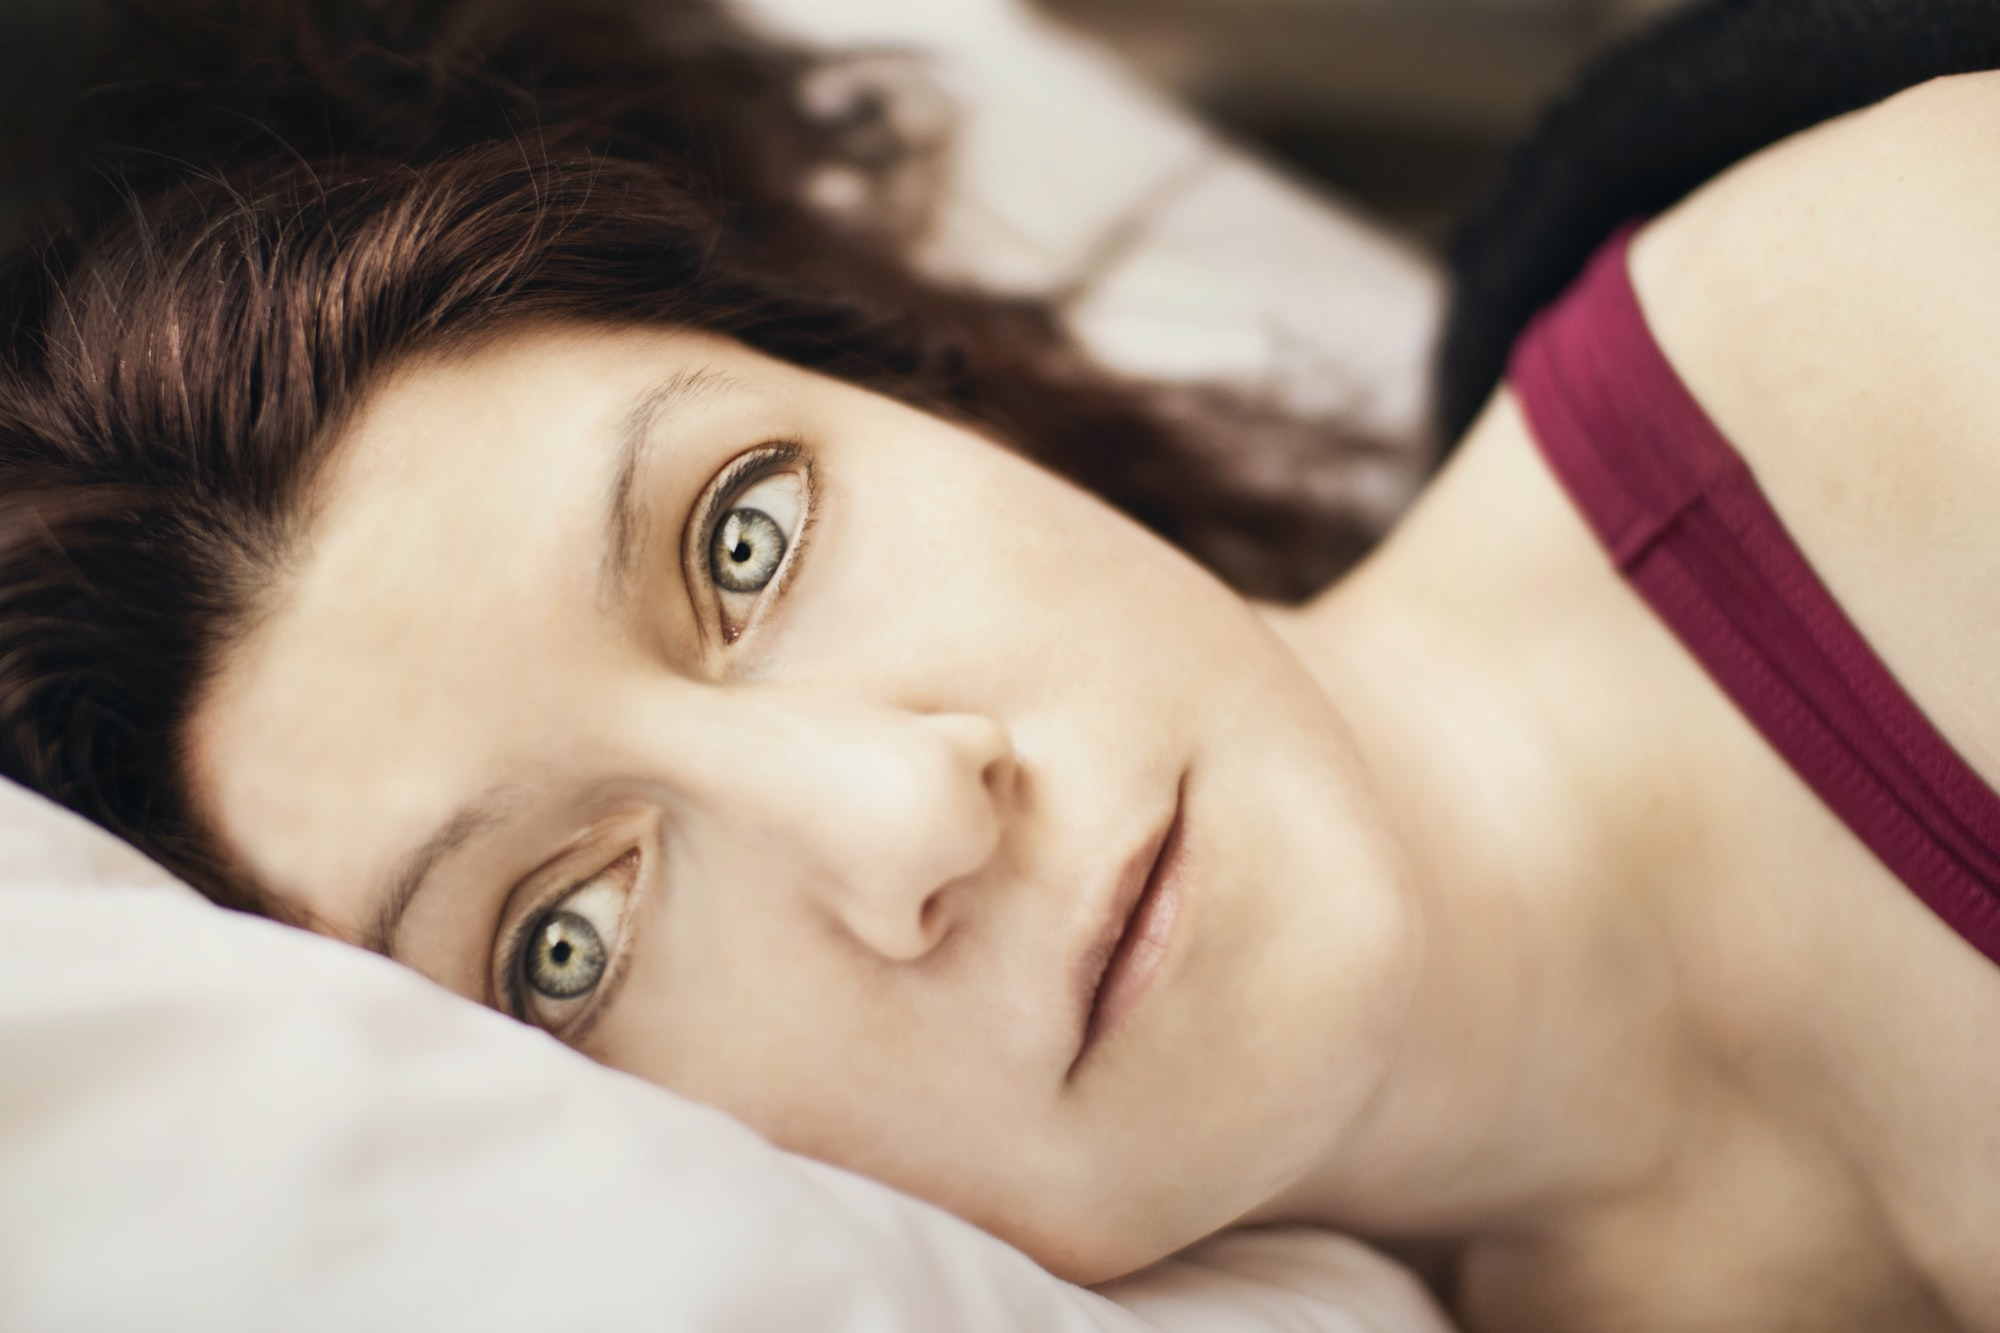 Young woman lies in bed, haunting eyes wide open following a night of insomnia, and ponders what today will bring - more of the same exhaustion, depression and sadness following the separation from her husband?